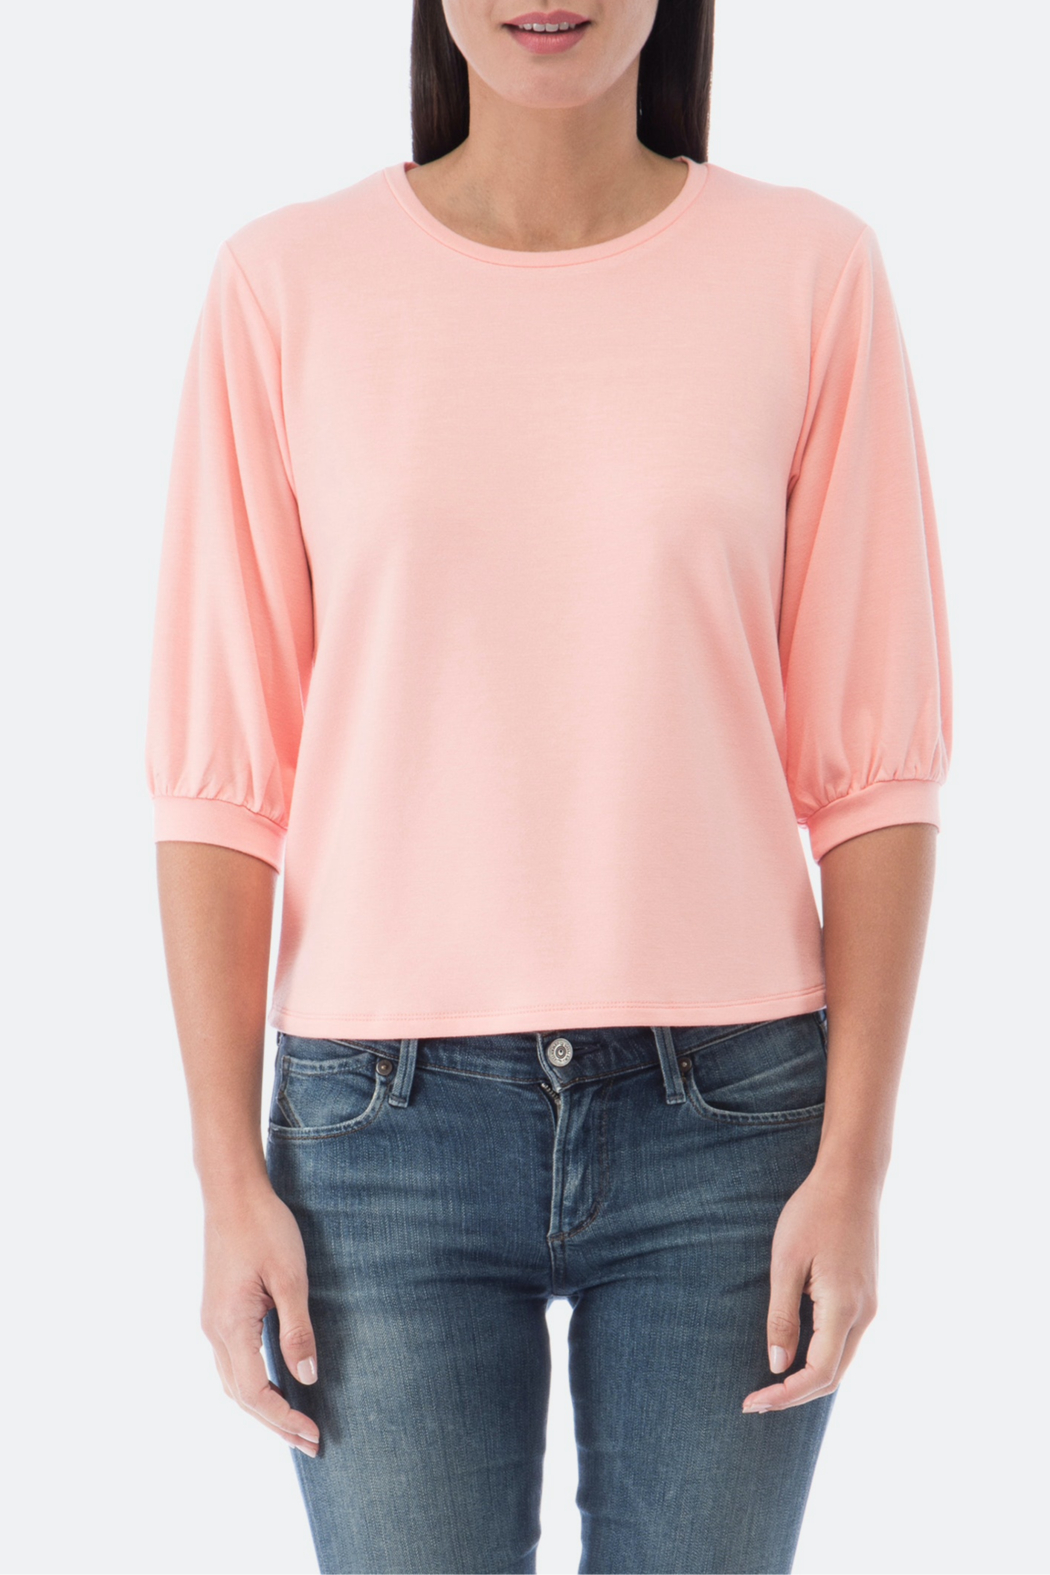 Bobeau Audre Puff Sleeve French Terry Top - Back Cropped Image